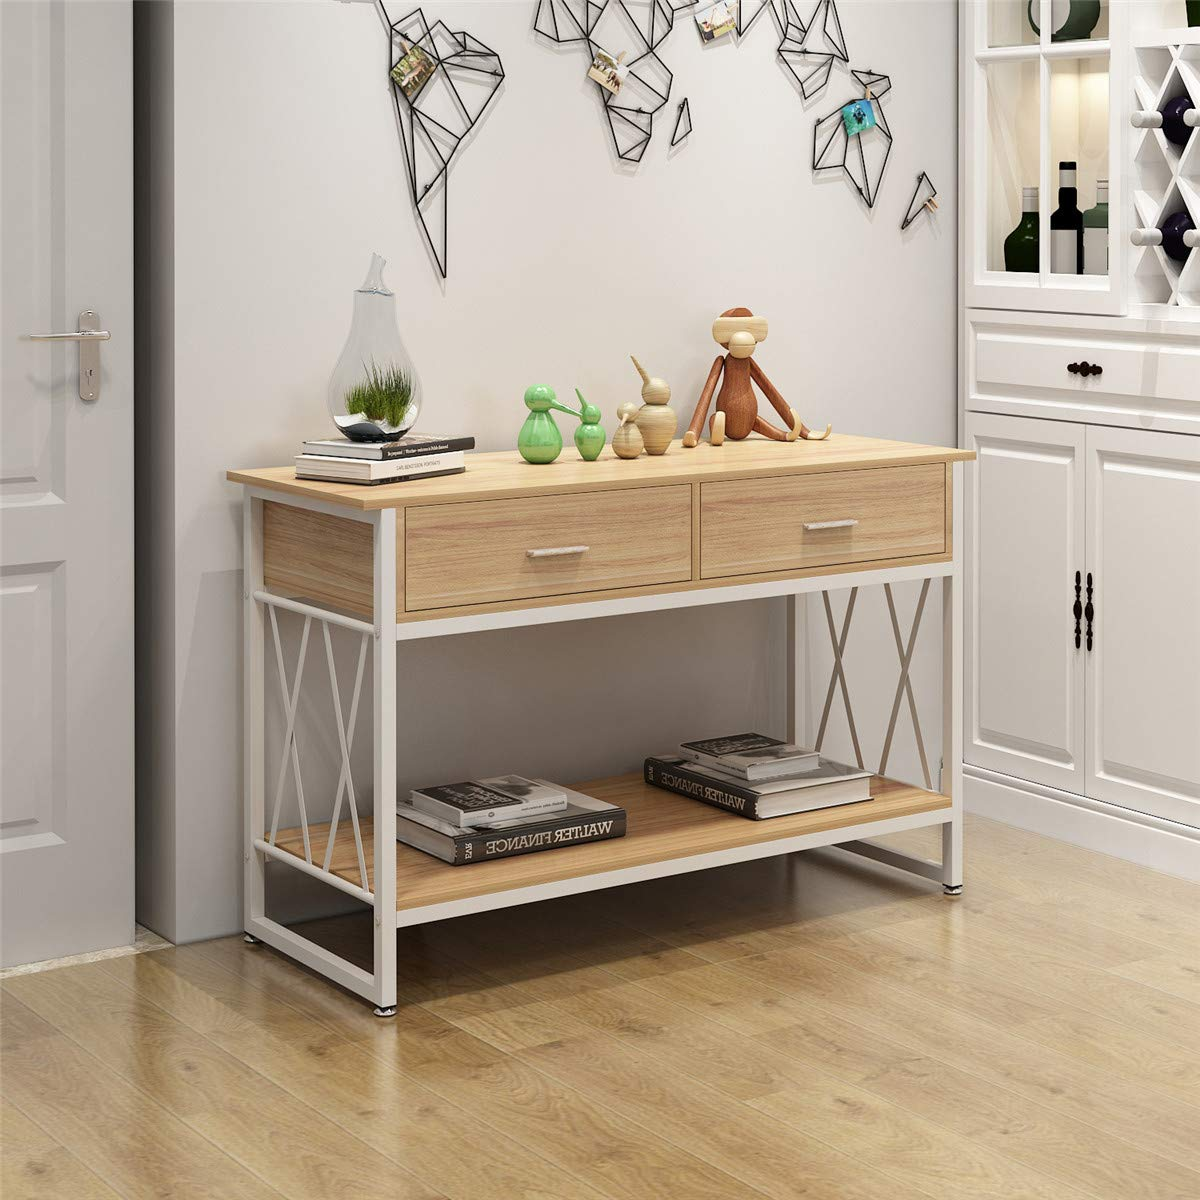 Console Table with Drawers DEWEL 47 Sofa Table with Shlef Side Table and Sideboard Accent Table for Living Room Entryway Corridor and Bedroom